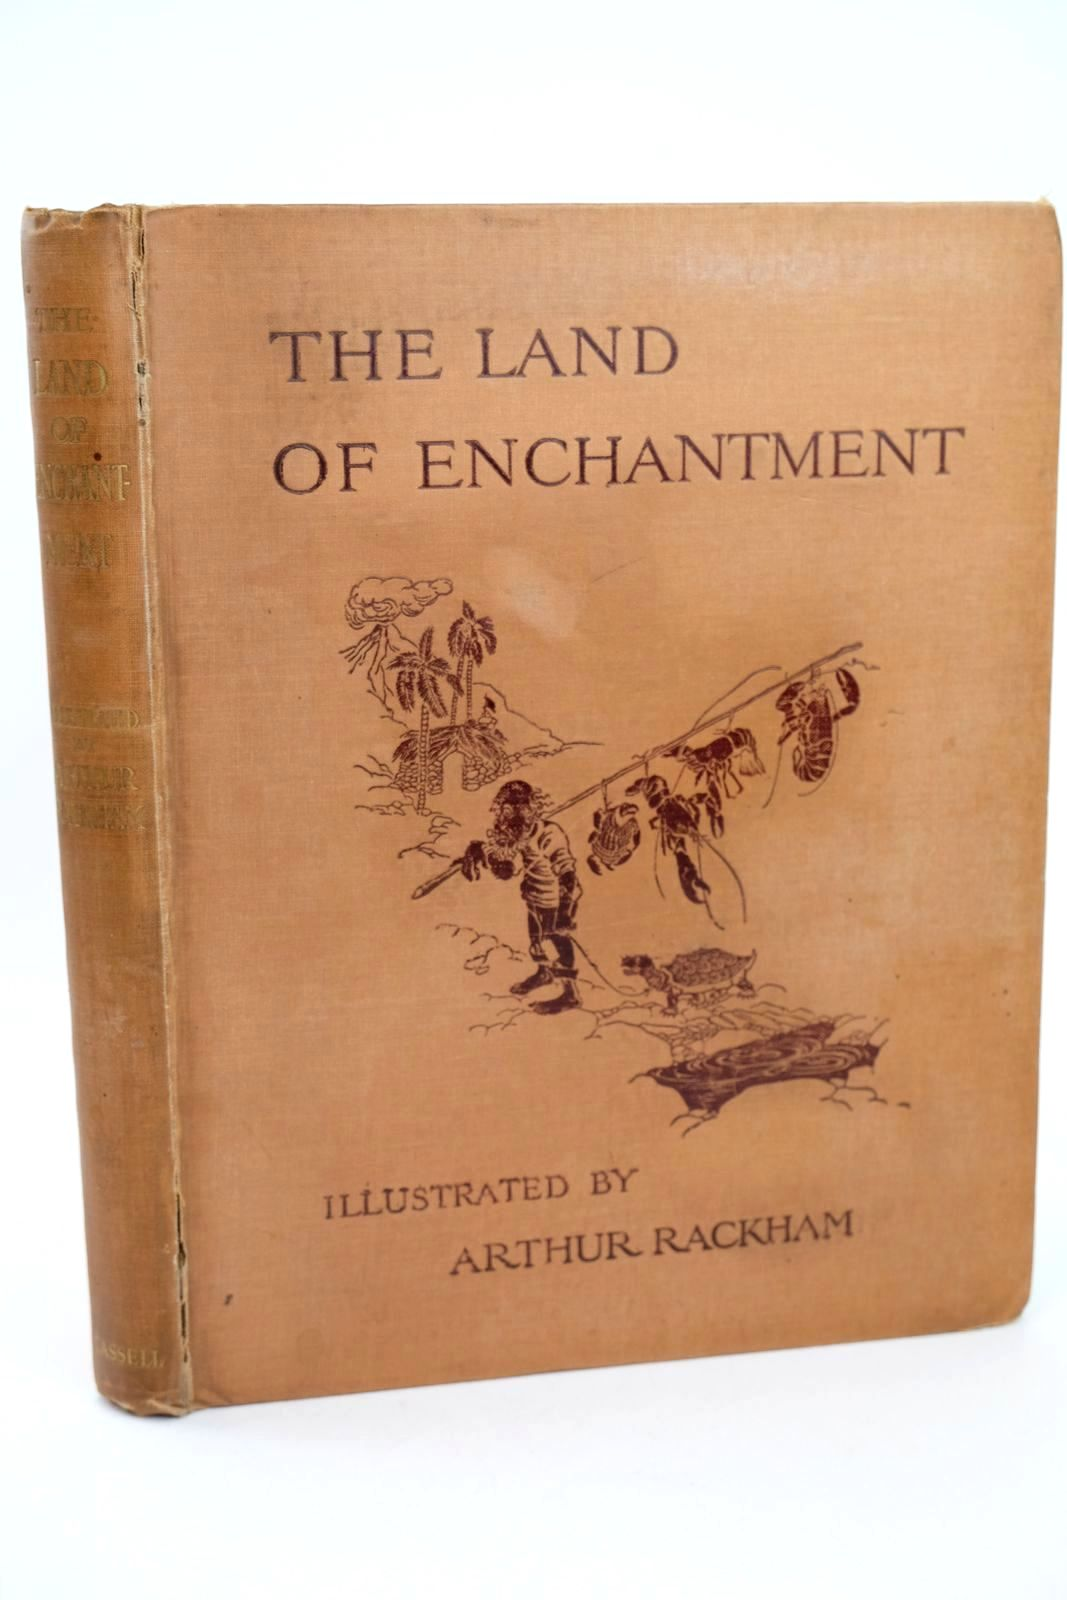 Photo of THE LAND OF ENCHANTMENT written by Bonser, A.E. Woolf, Sidney Bucheim, E.S. illustrated by Rackham, Arthur published by Cassell & Co. Ltd. (STOCK CODE: 1318504)  for sale by Stella & Rose's Books